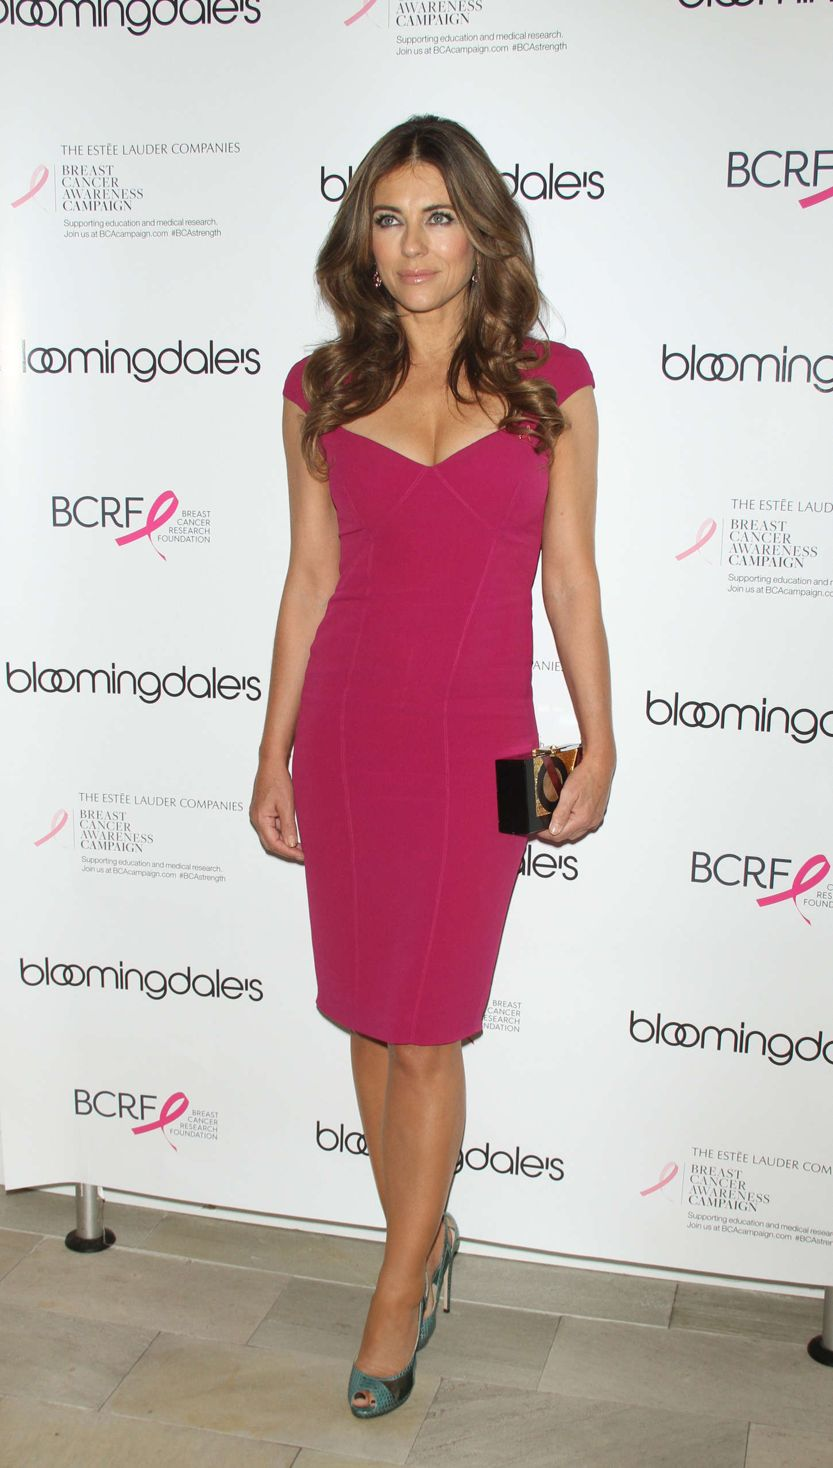 Elizabeth Hurley Looks Stunning at Cancer Awareness